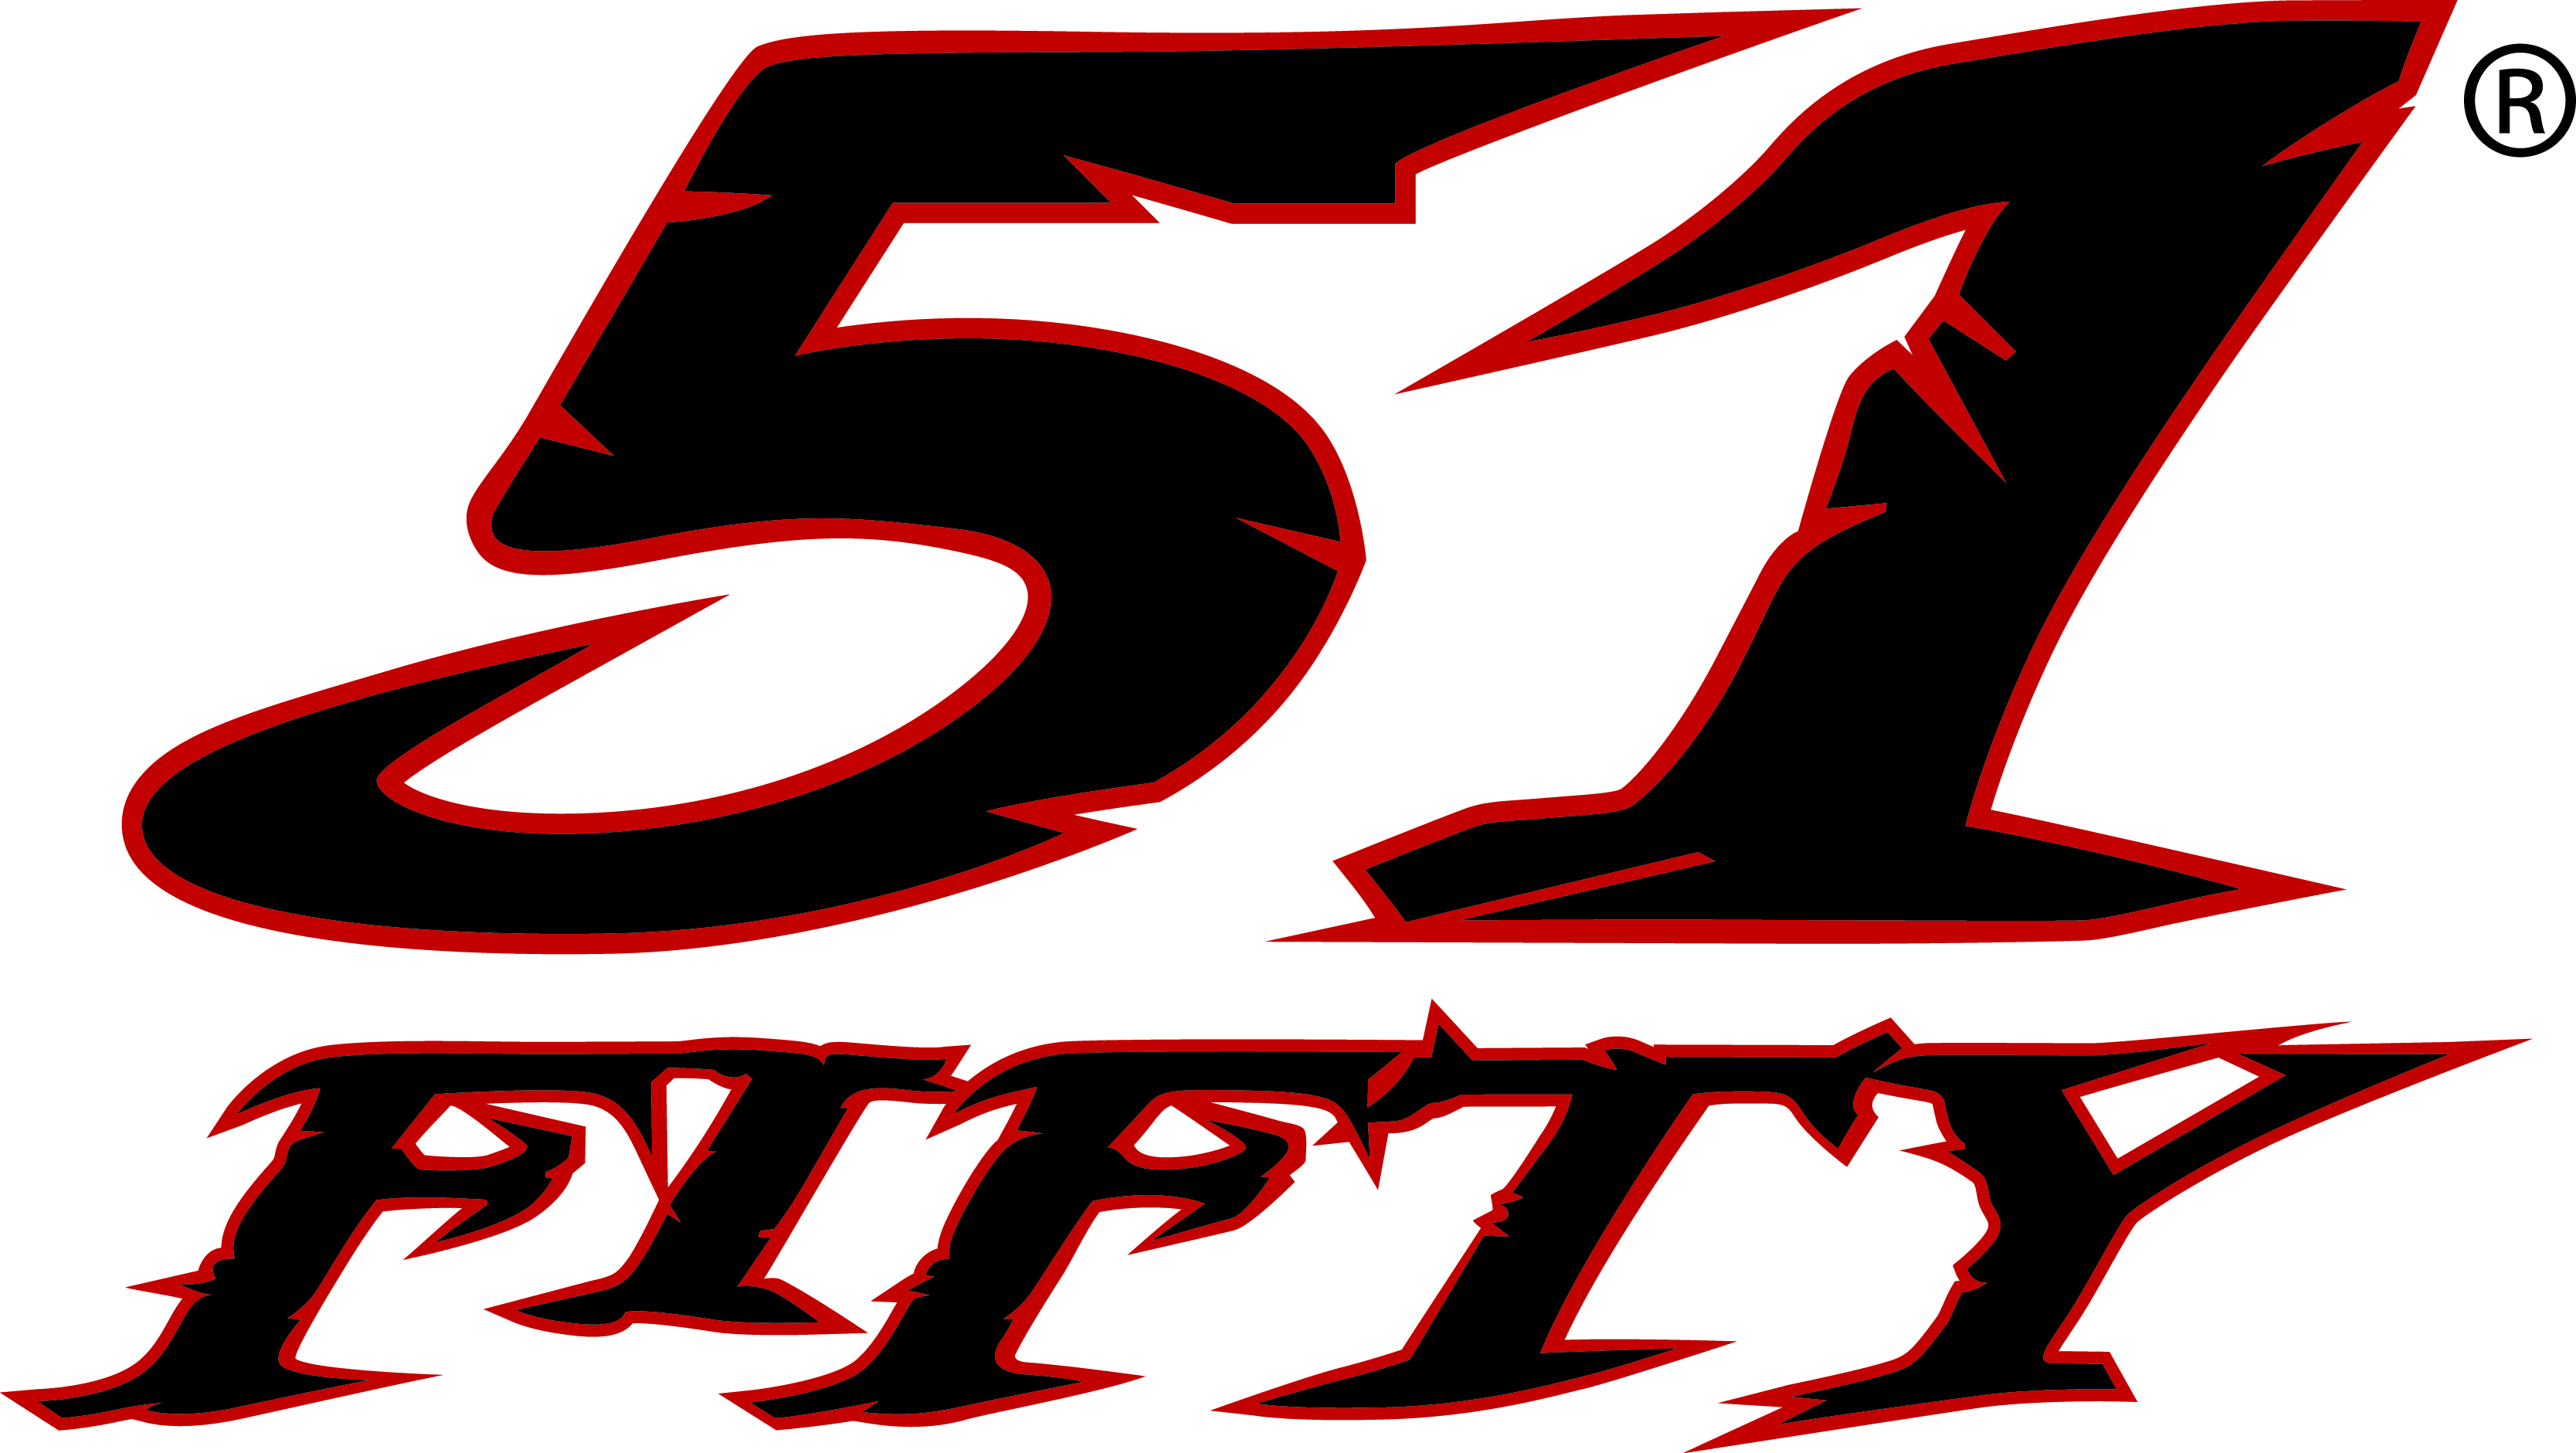 51Fifty_BLACK_REDOutline R 3MB